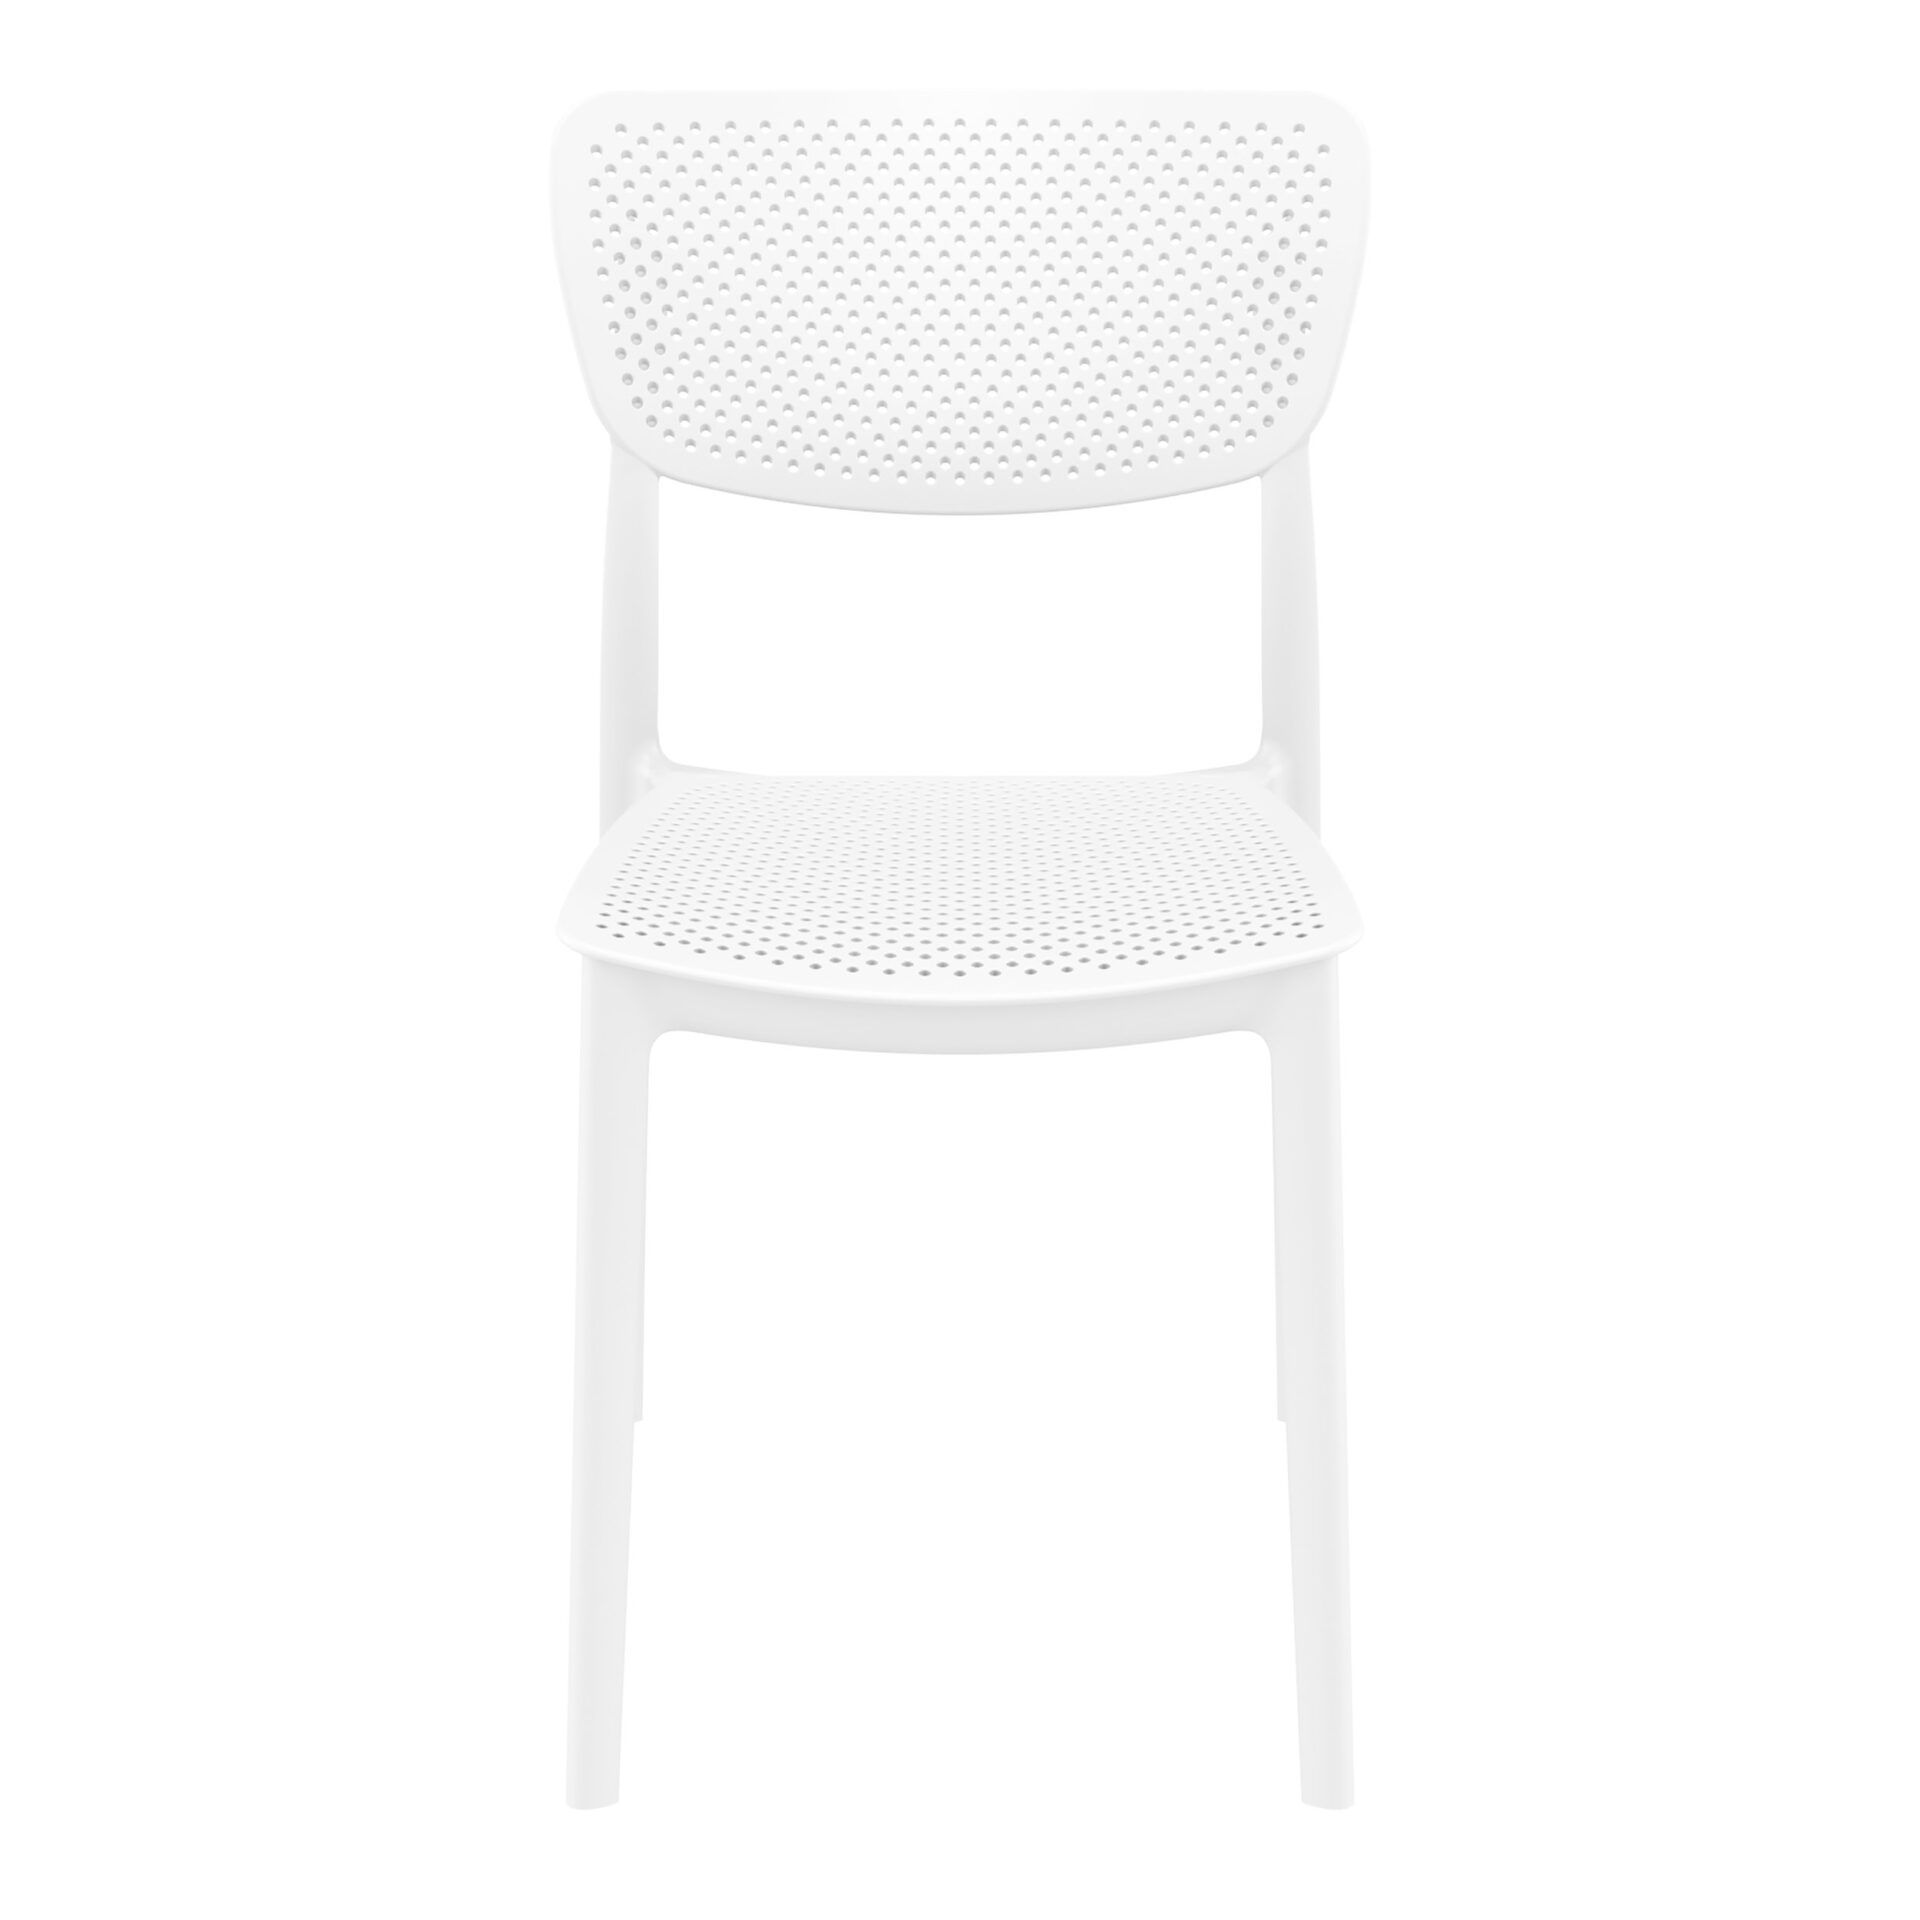 polypropylene hospitality seating lucy chair white front